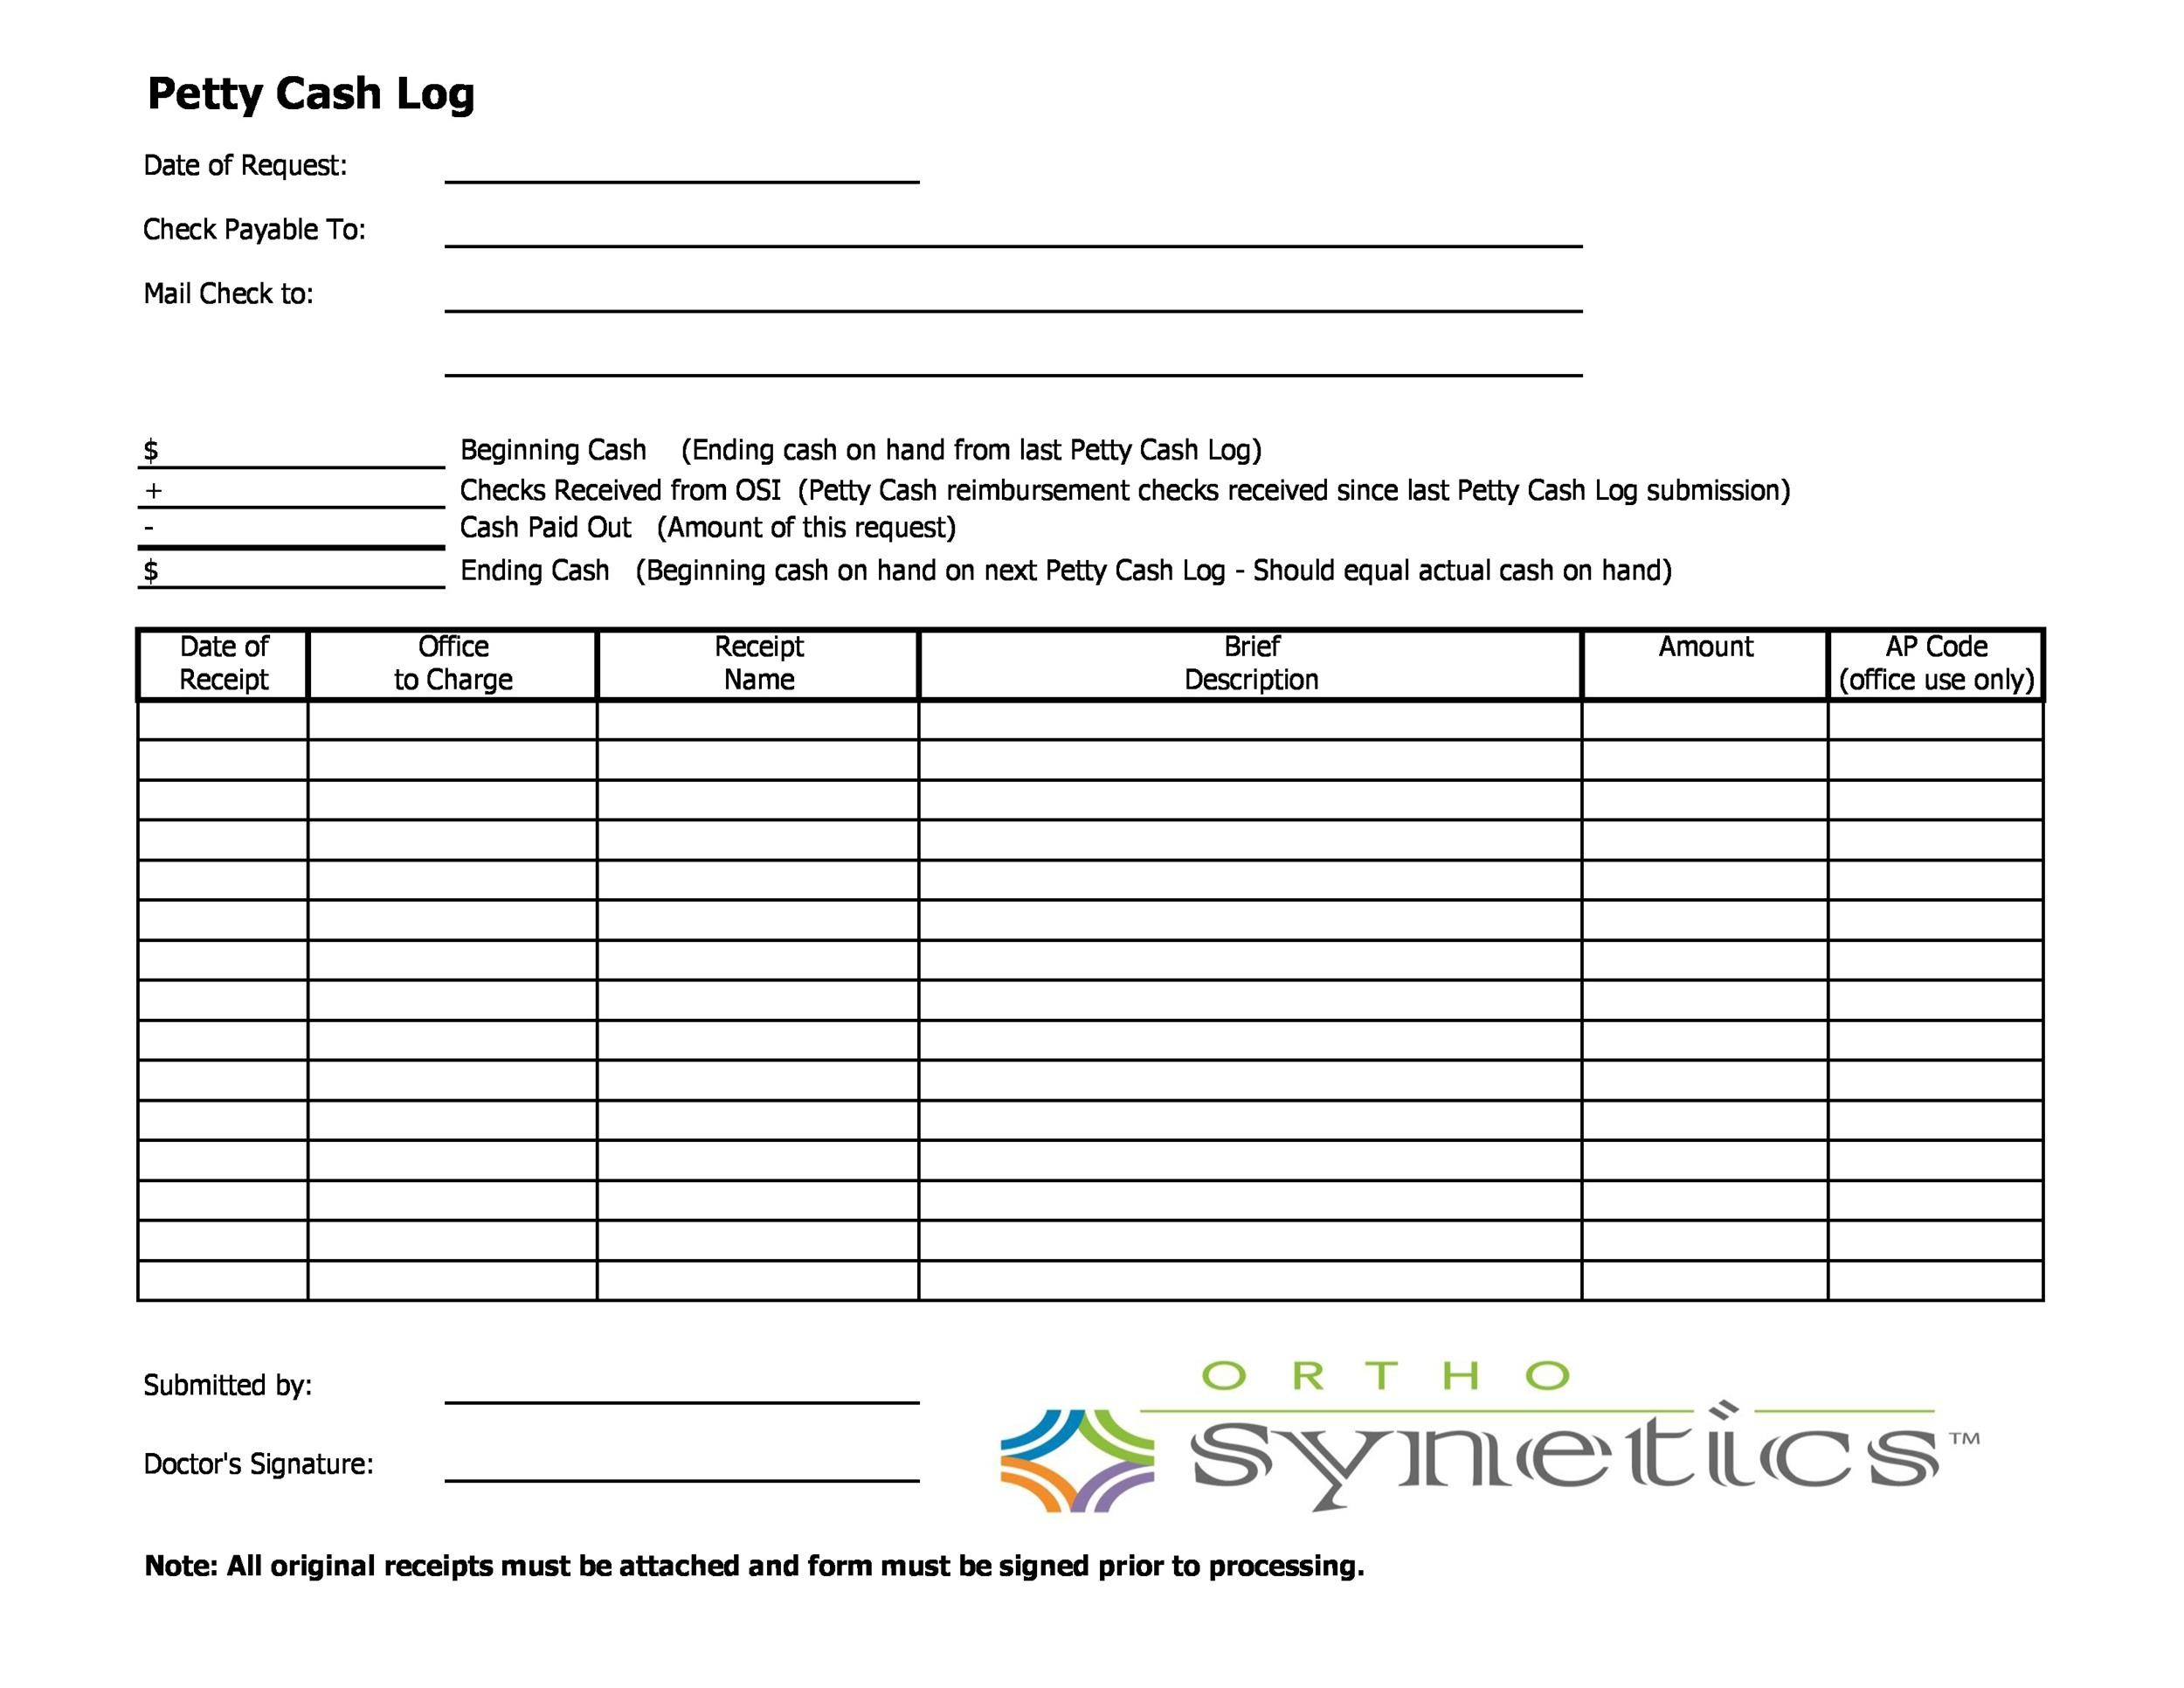 40 Petty Cash Log Templates \ Forms Excel, PDF, Word - Template Lab - petty cash log template